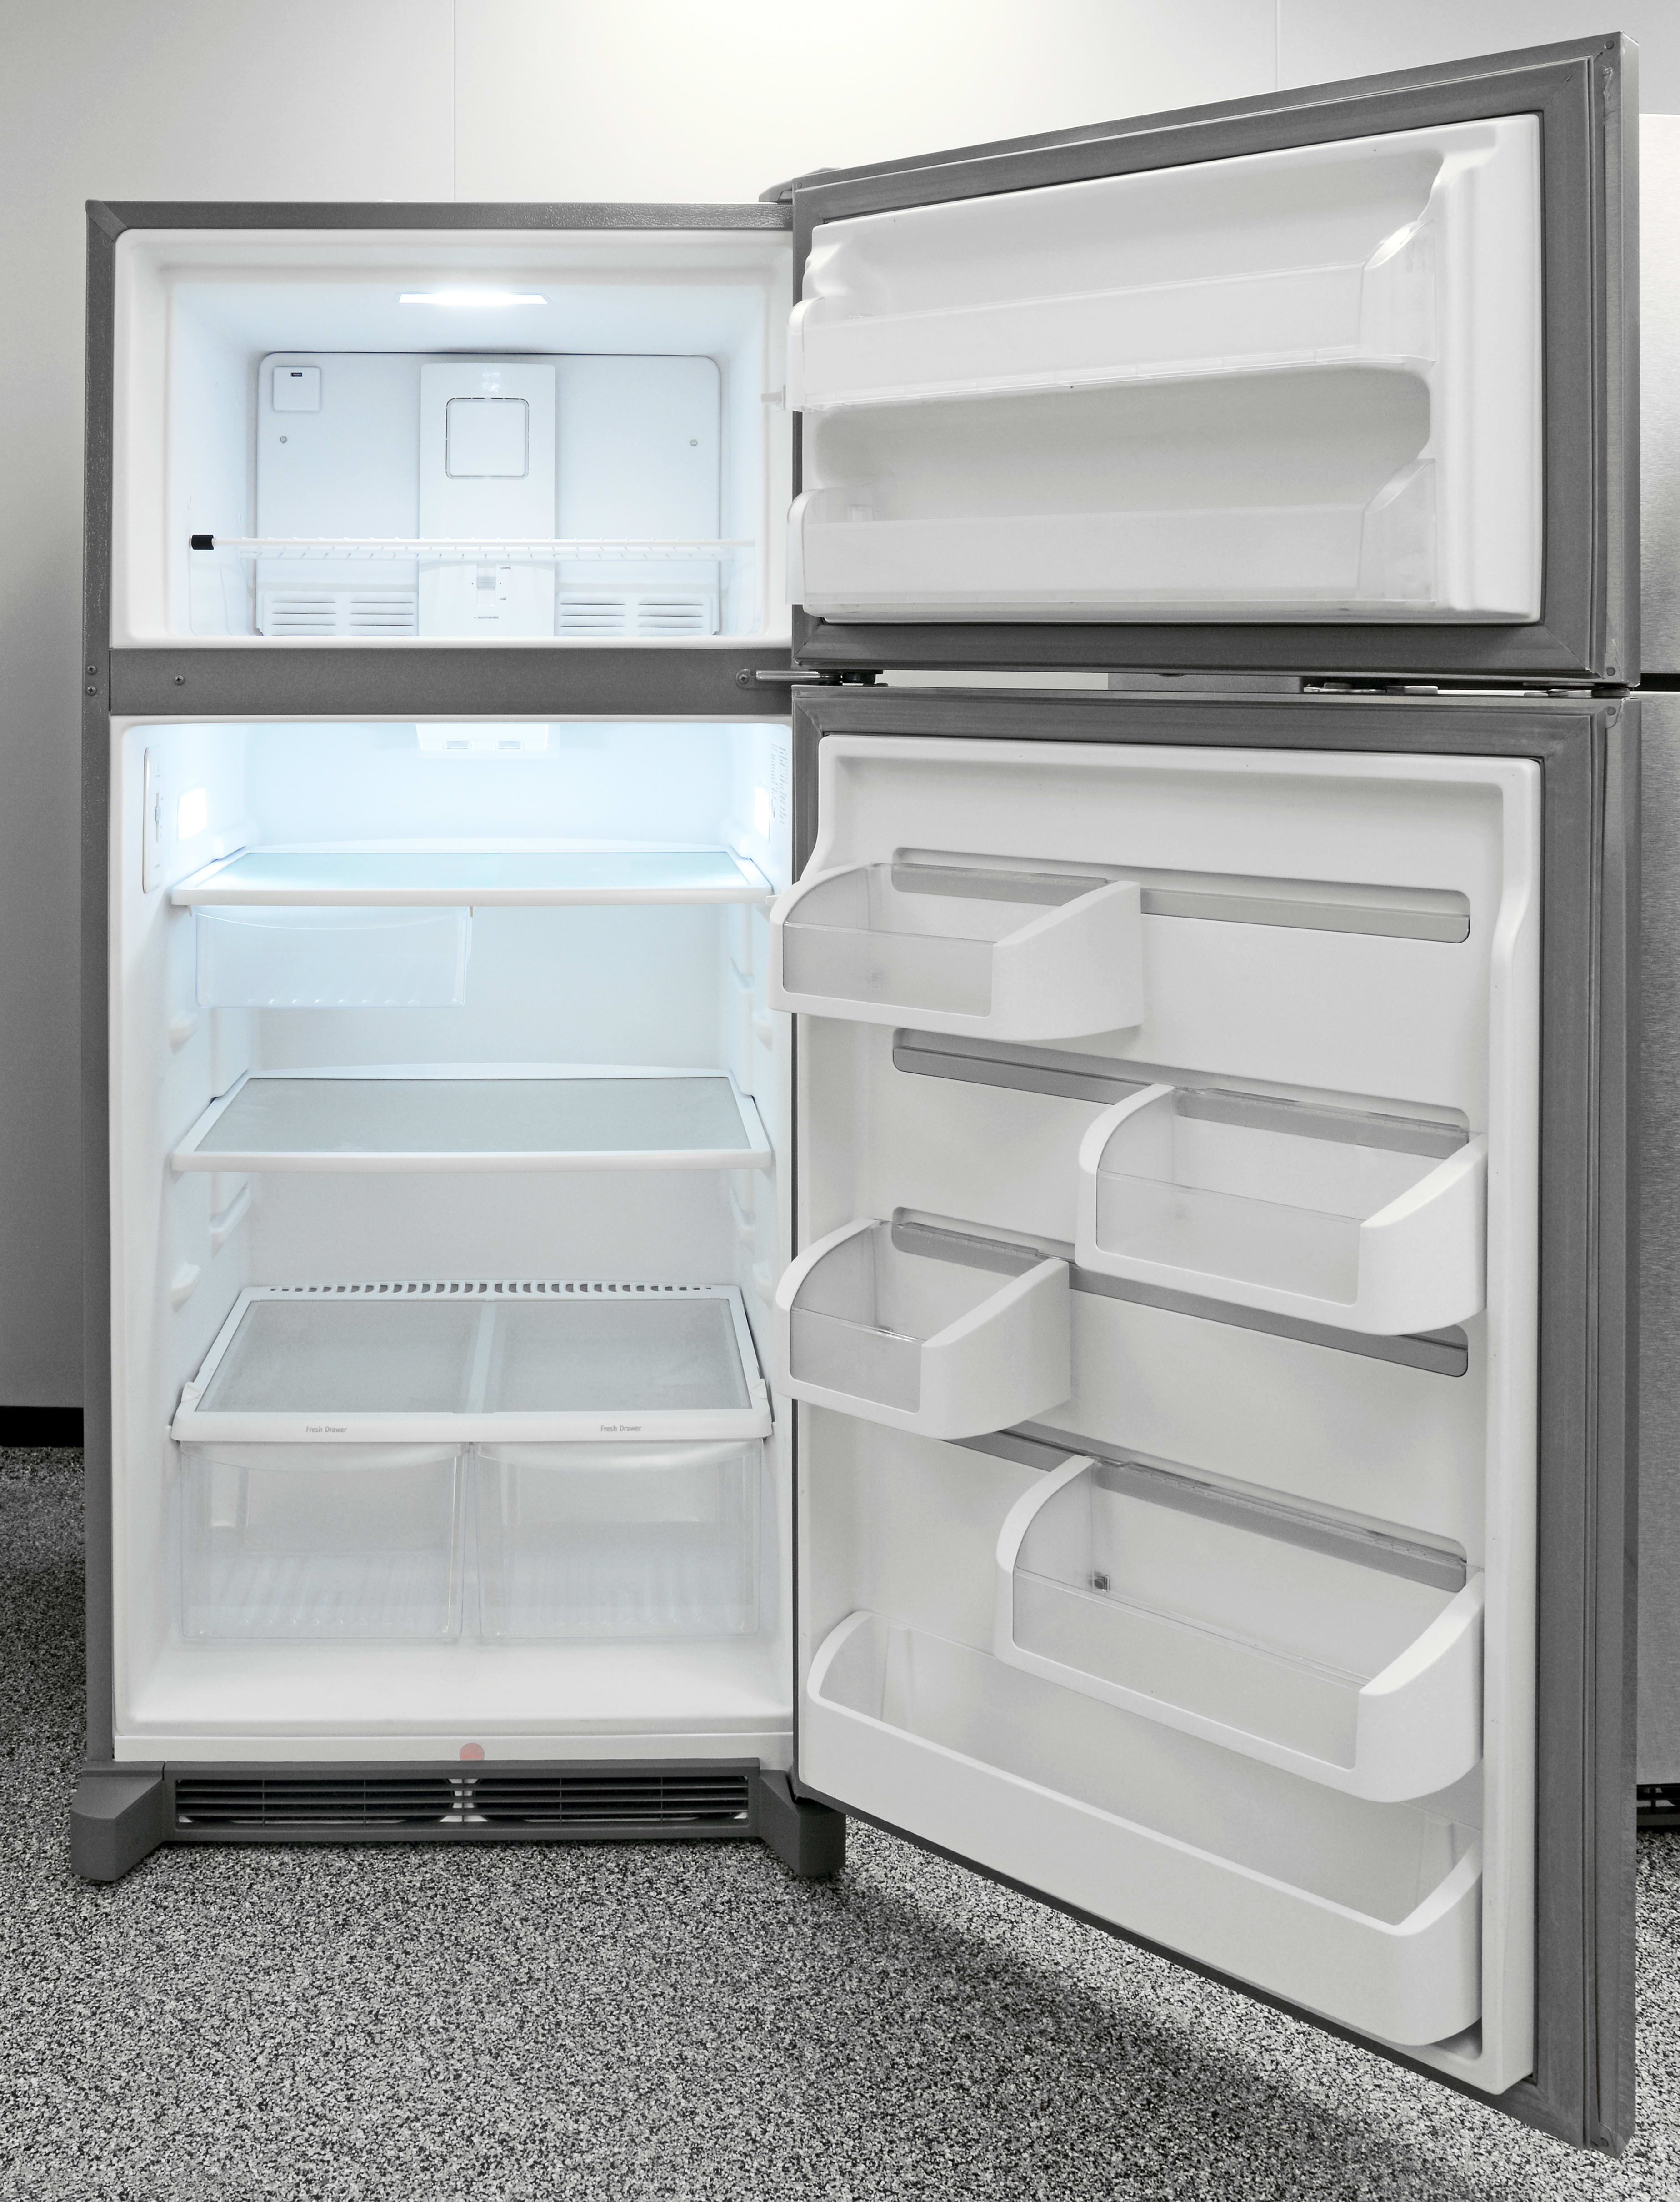 The Frigidaire Gallery FGTR1845QF is an excellent fridge overall, both in terms of style and cooling performance.